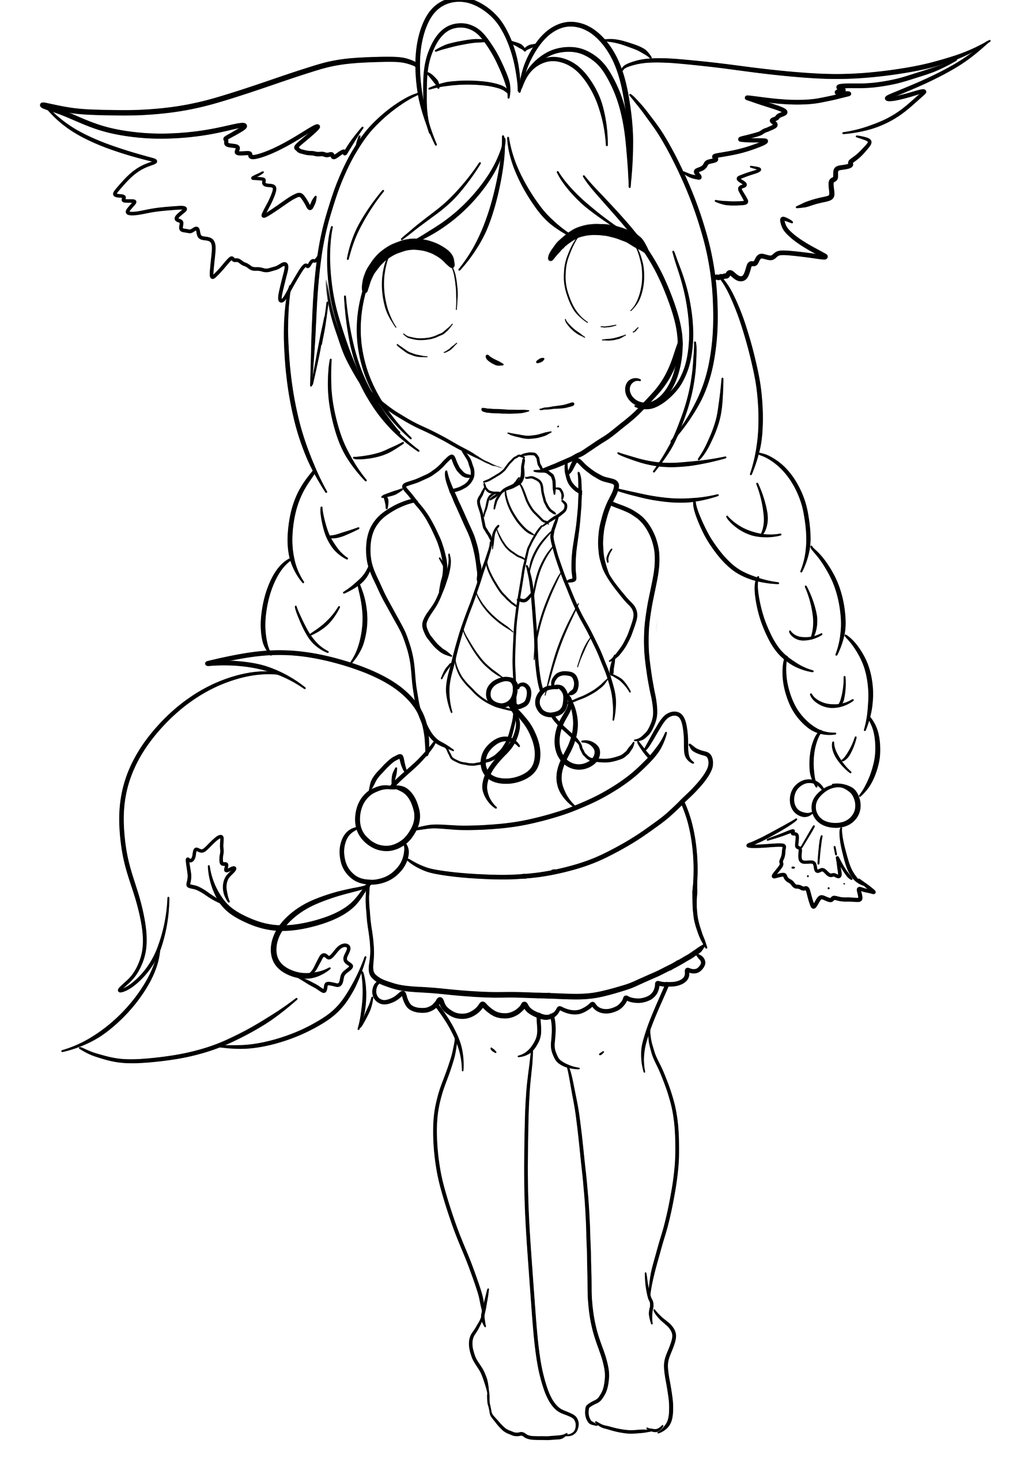 fox anime girl coloring pages fox girl coloring pages sketch coloring page anime fox girl coloring pages